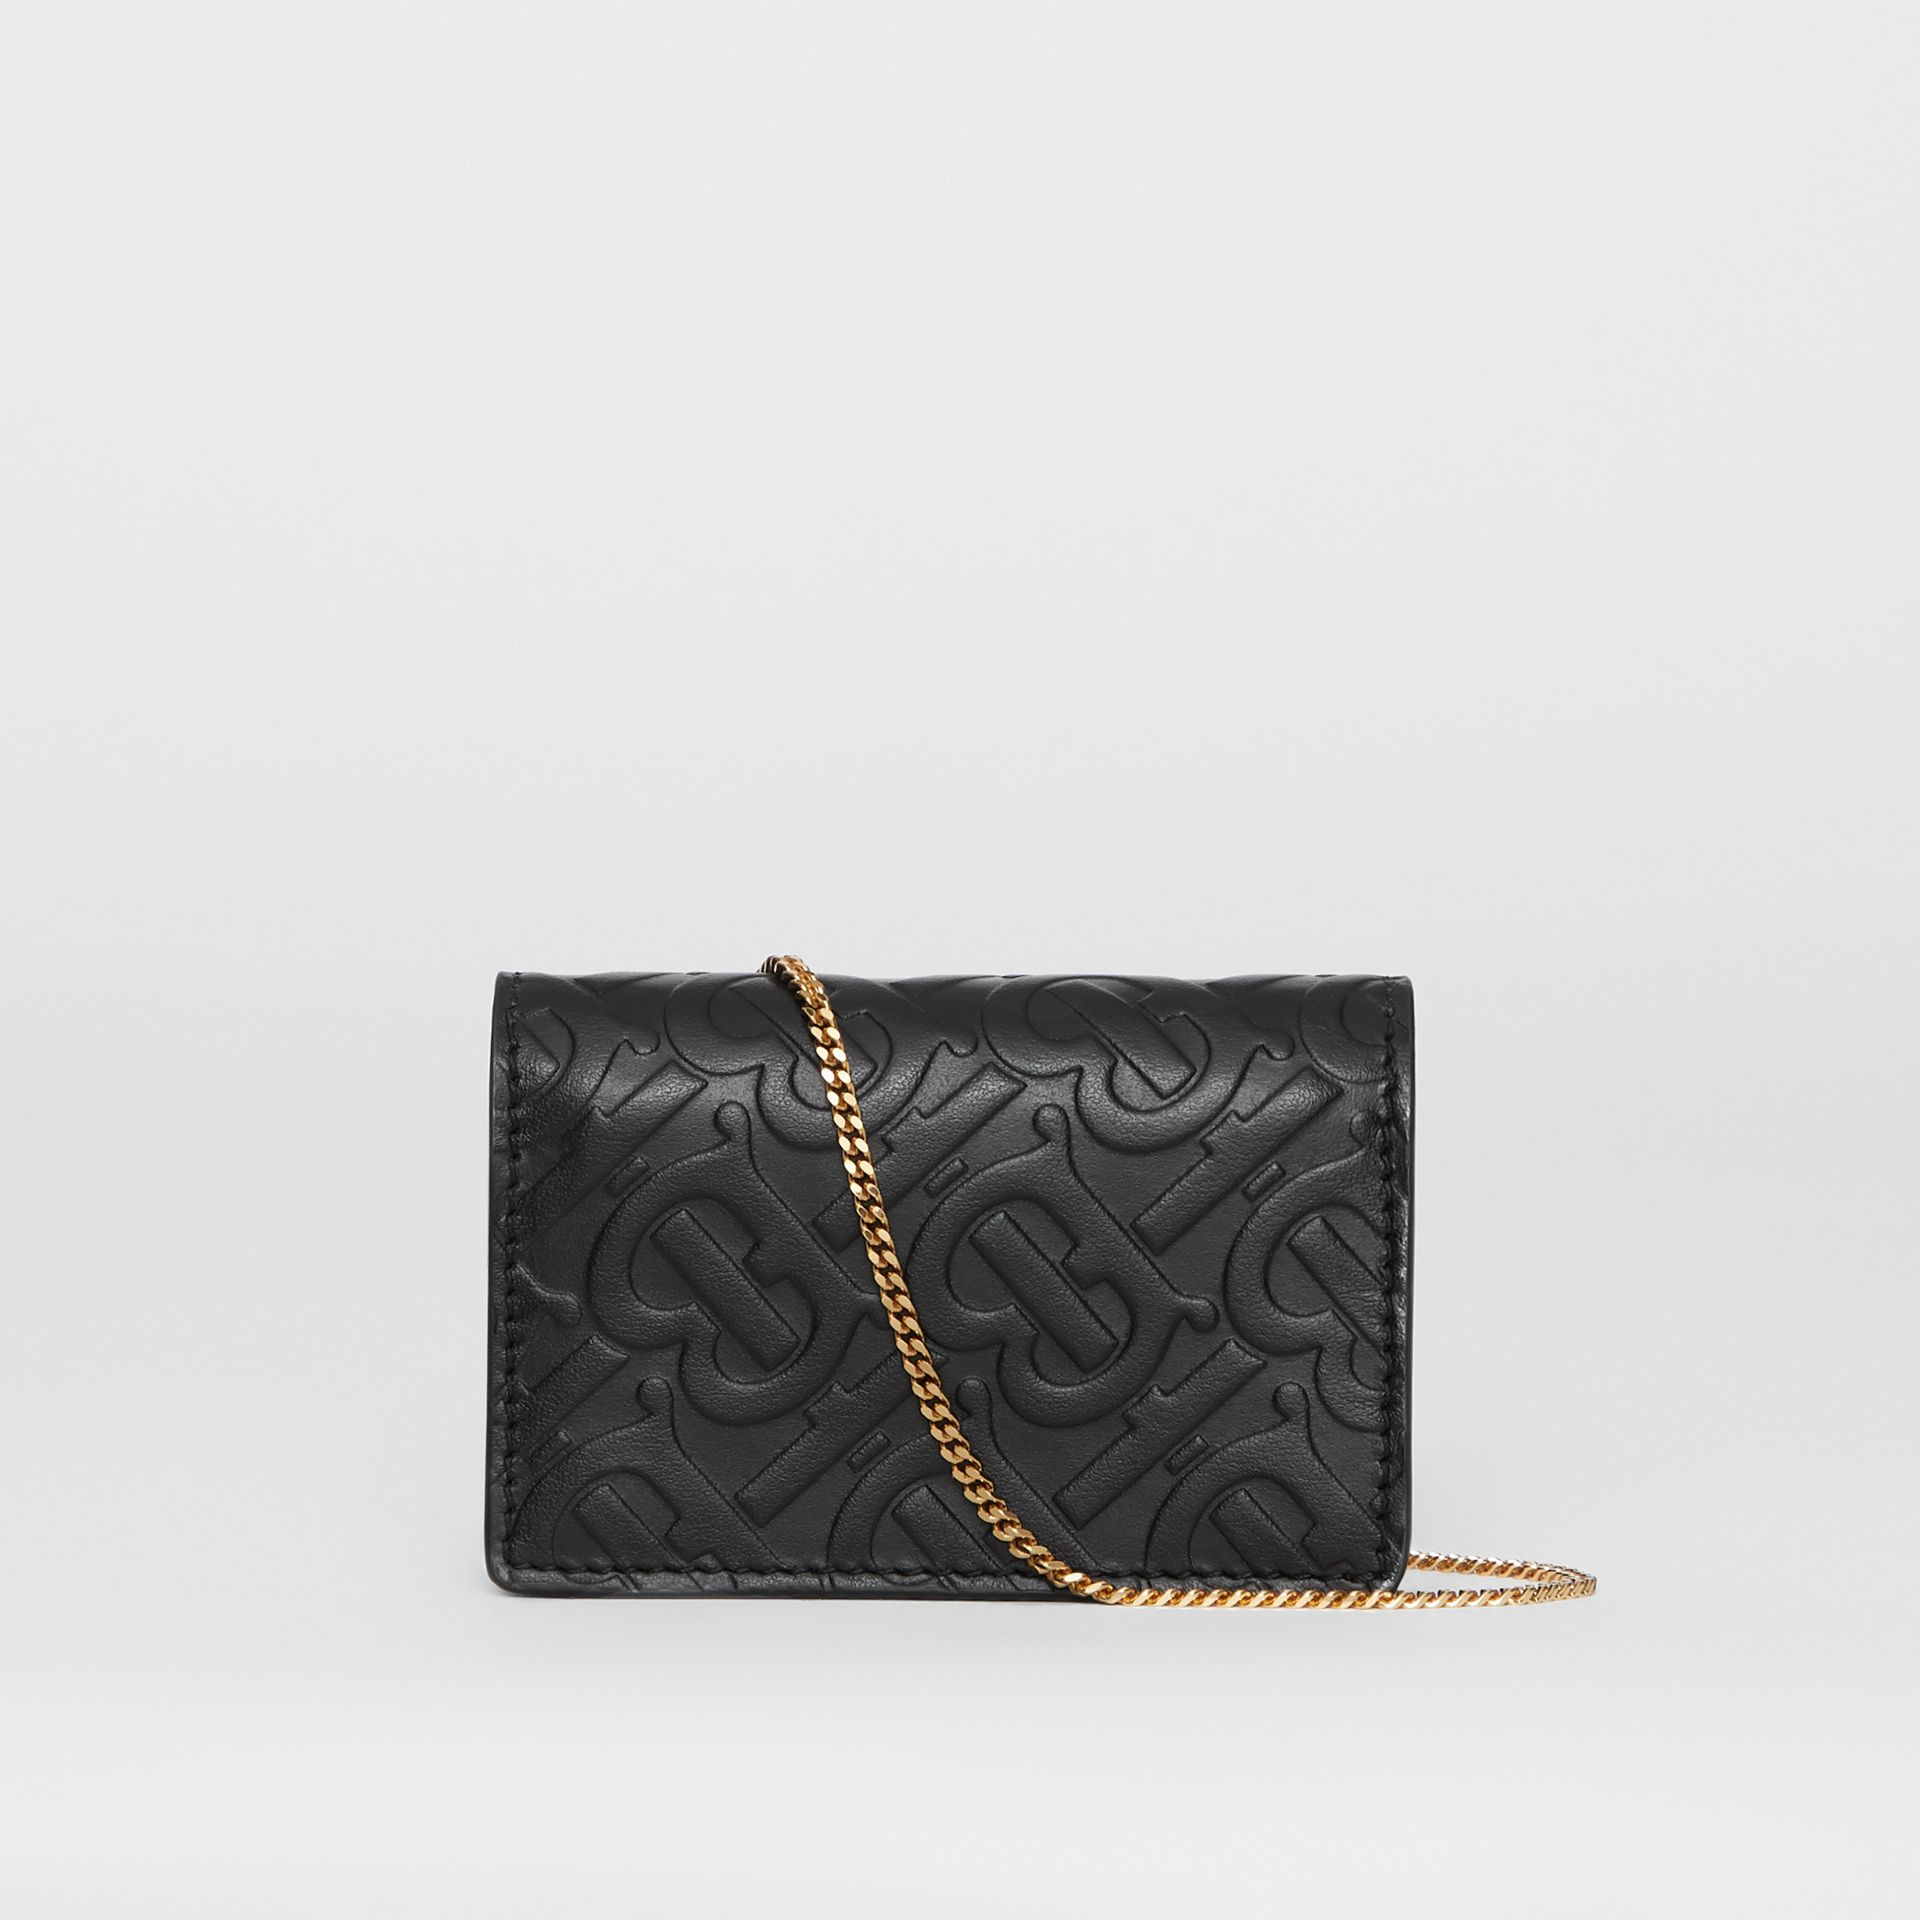 Monogram Leather Card Case with Detachable Strap in Black - Women | Burberry United Kingdom - gallery image 7